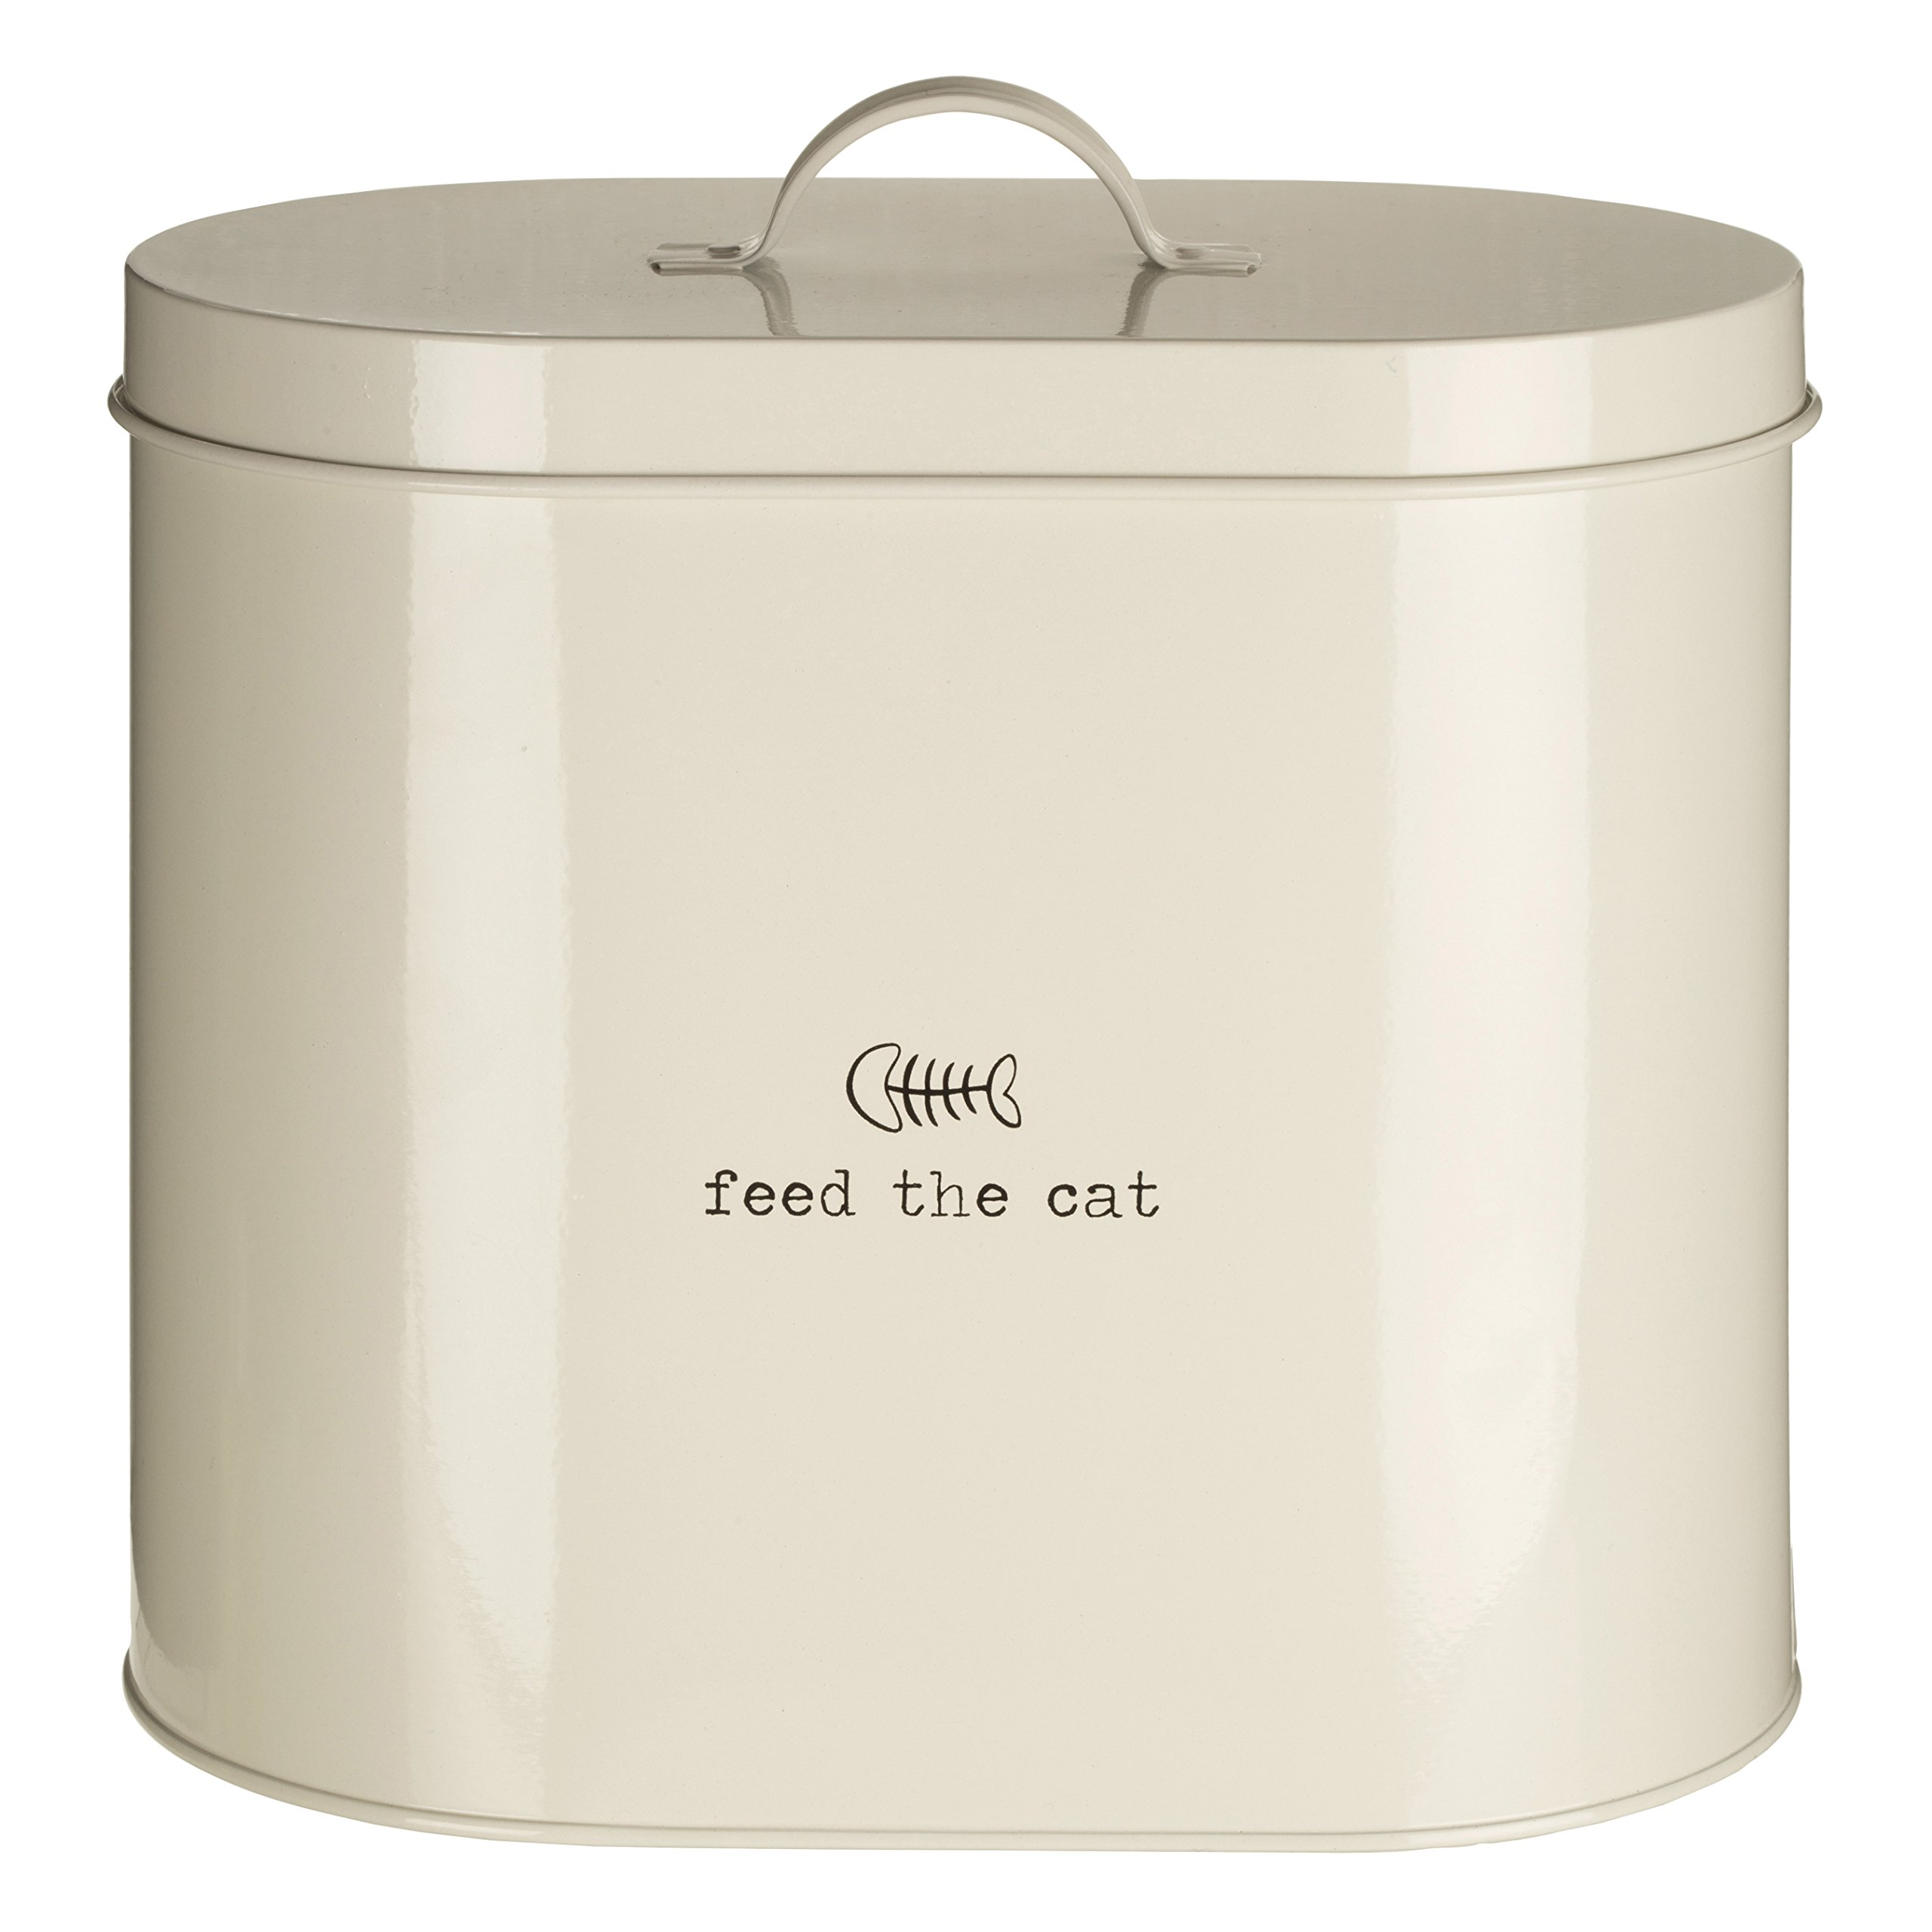 Premier Housewares Adore Pets Feed The Cat Food Storage Bin with Spoon, 6.5 L - Cream